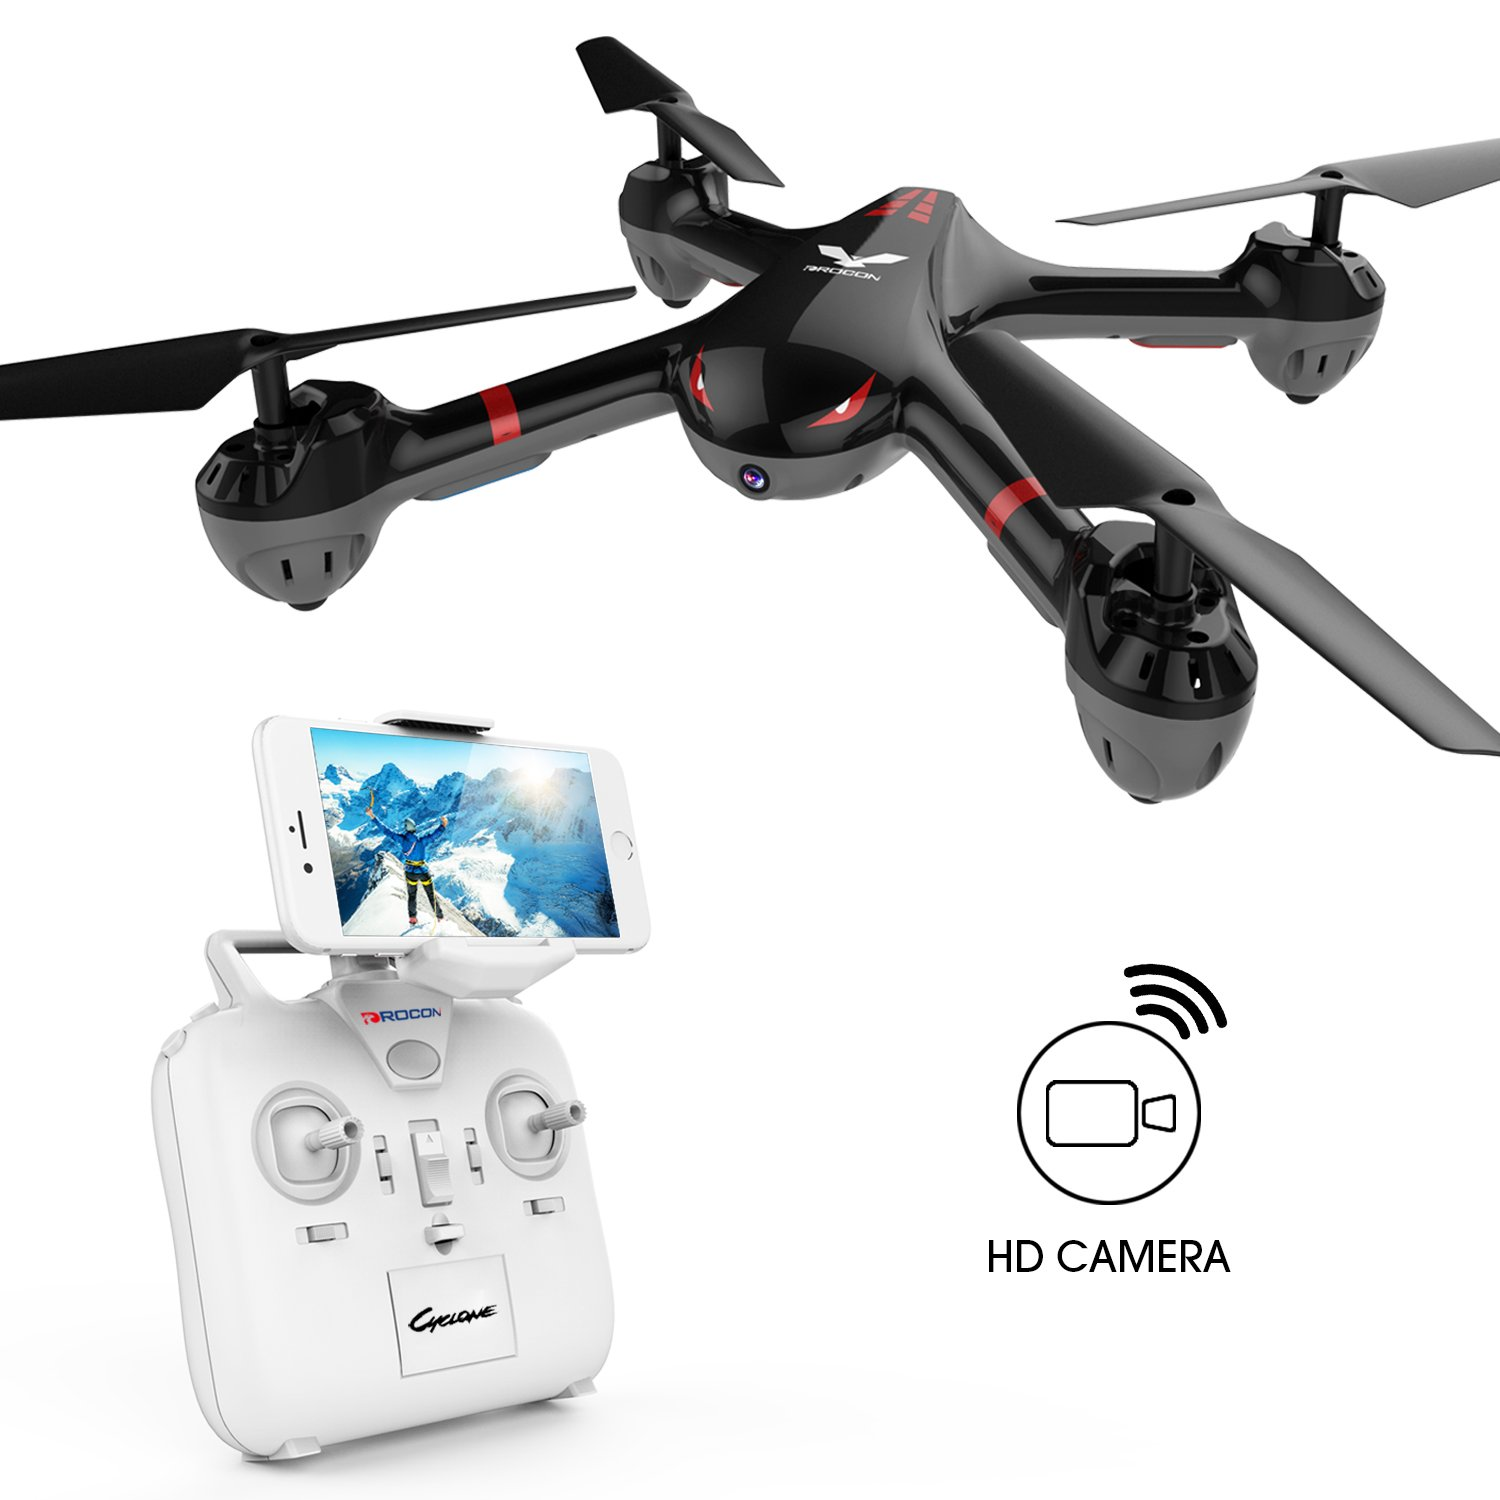 DROCON Drone For Beginners X708W Wi-Fi FPV Training Quadcopter